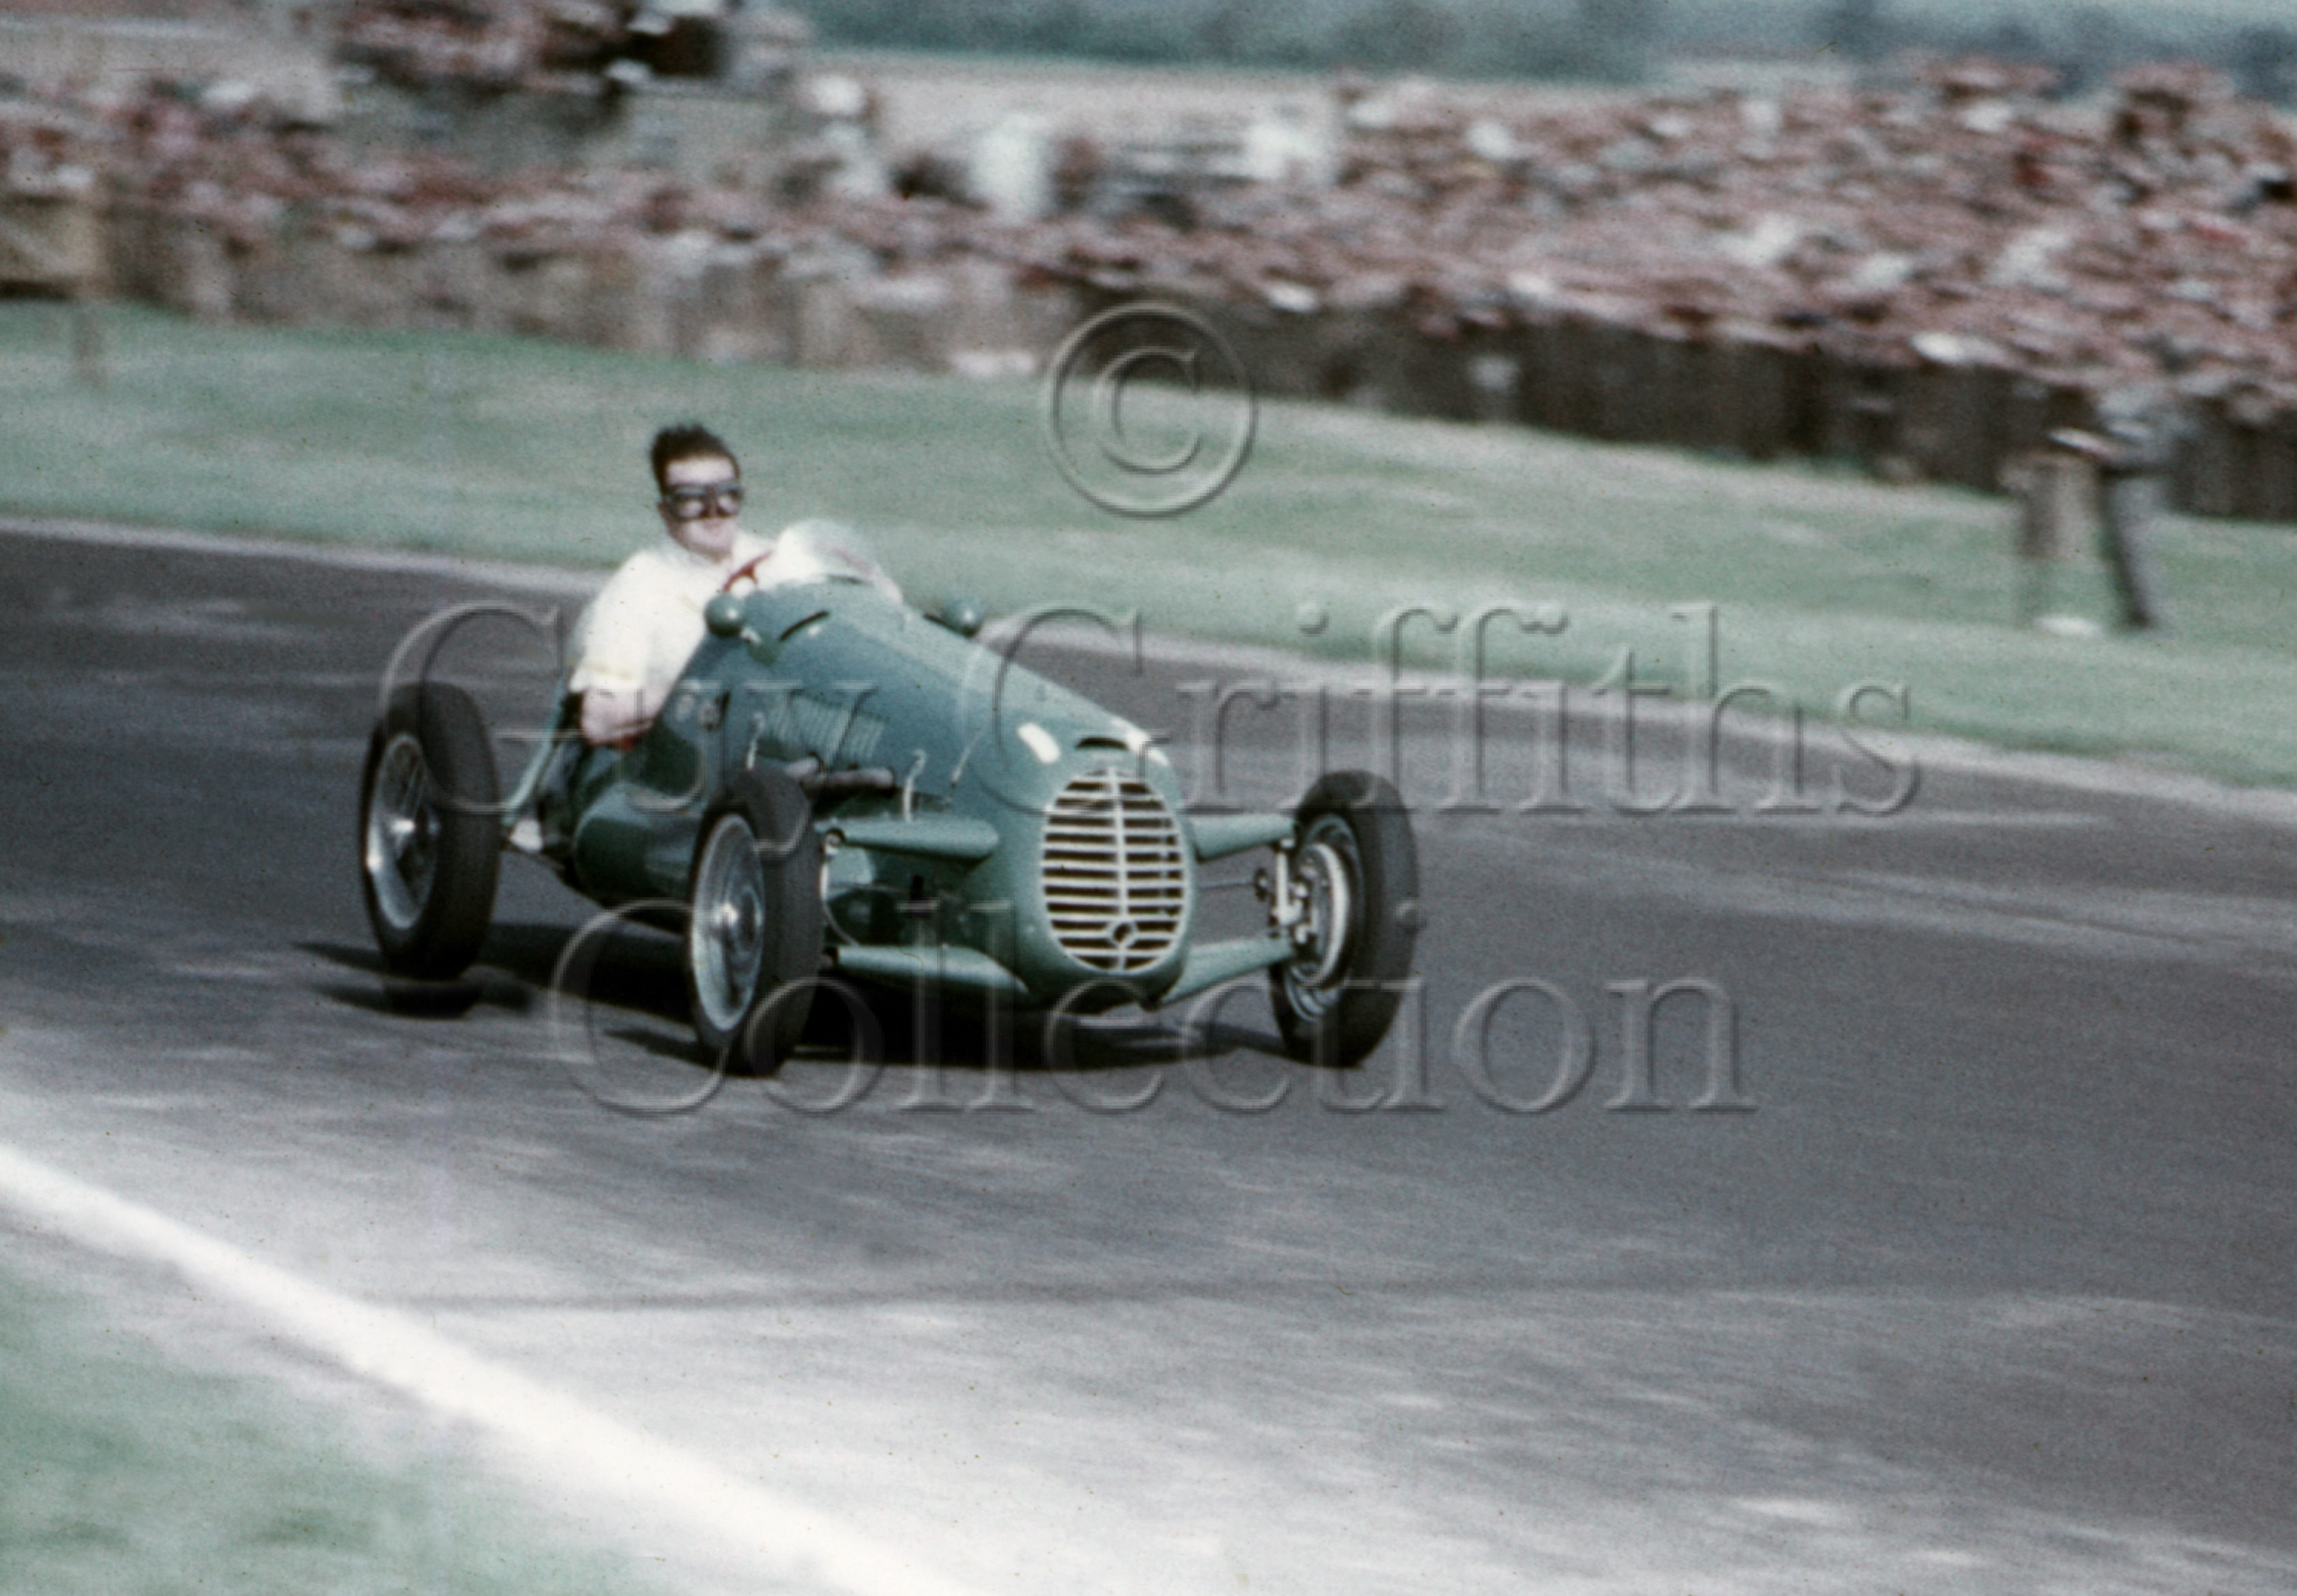 C-3-191–F-Kennington–Cisitalia–Goodwood–18-04-1949.jpg - The Guy Griffiths Collection